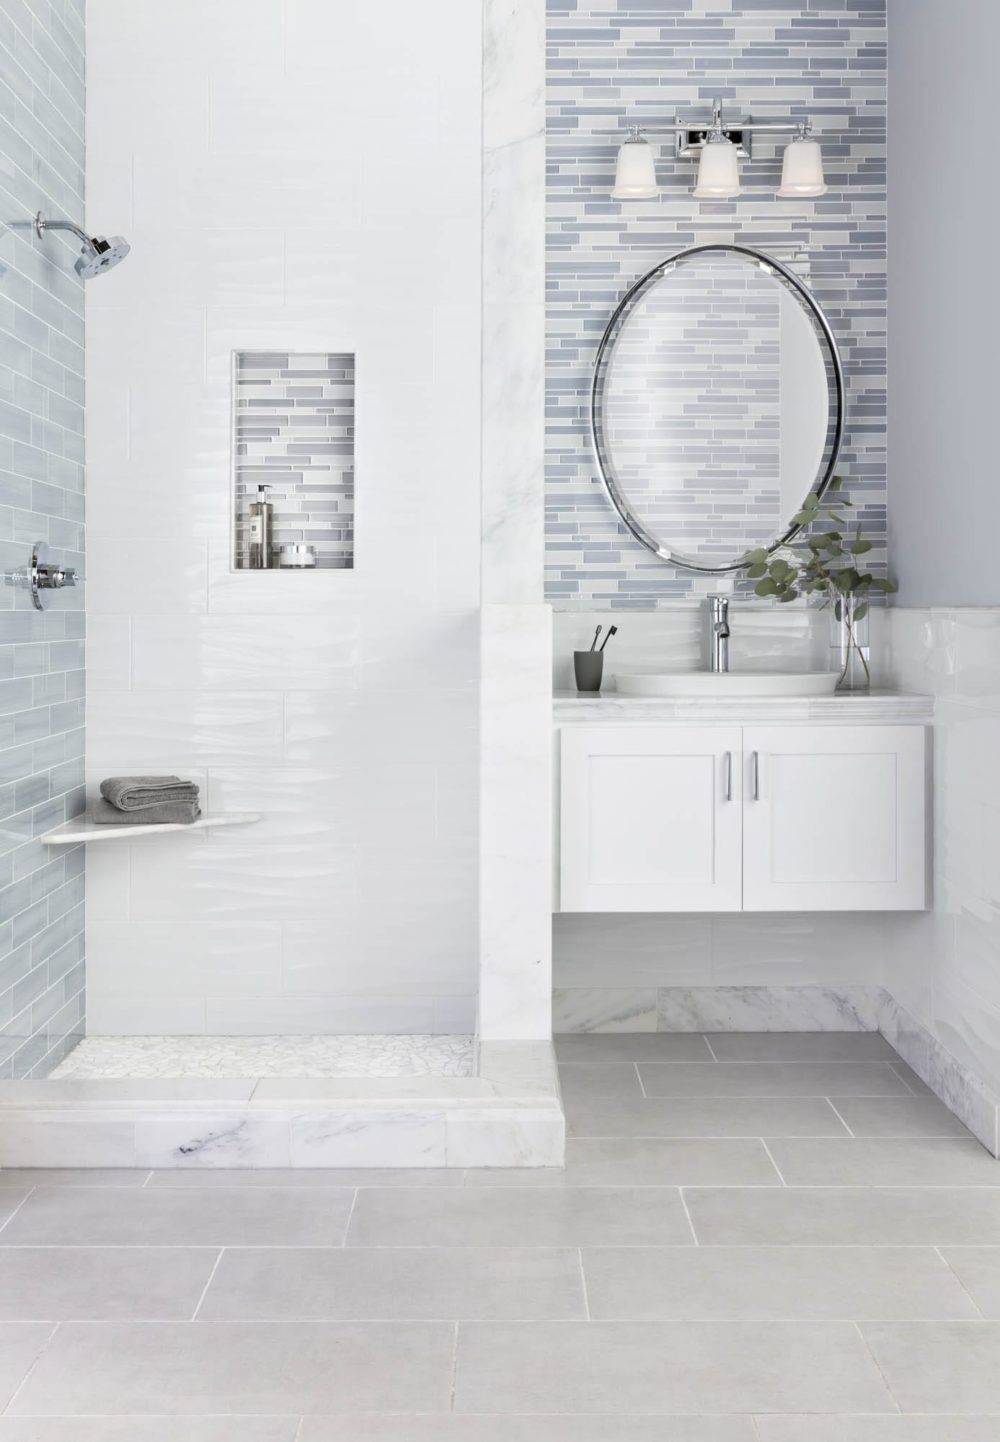 A finished bathroom with transition pieces.